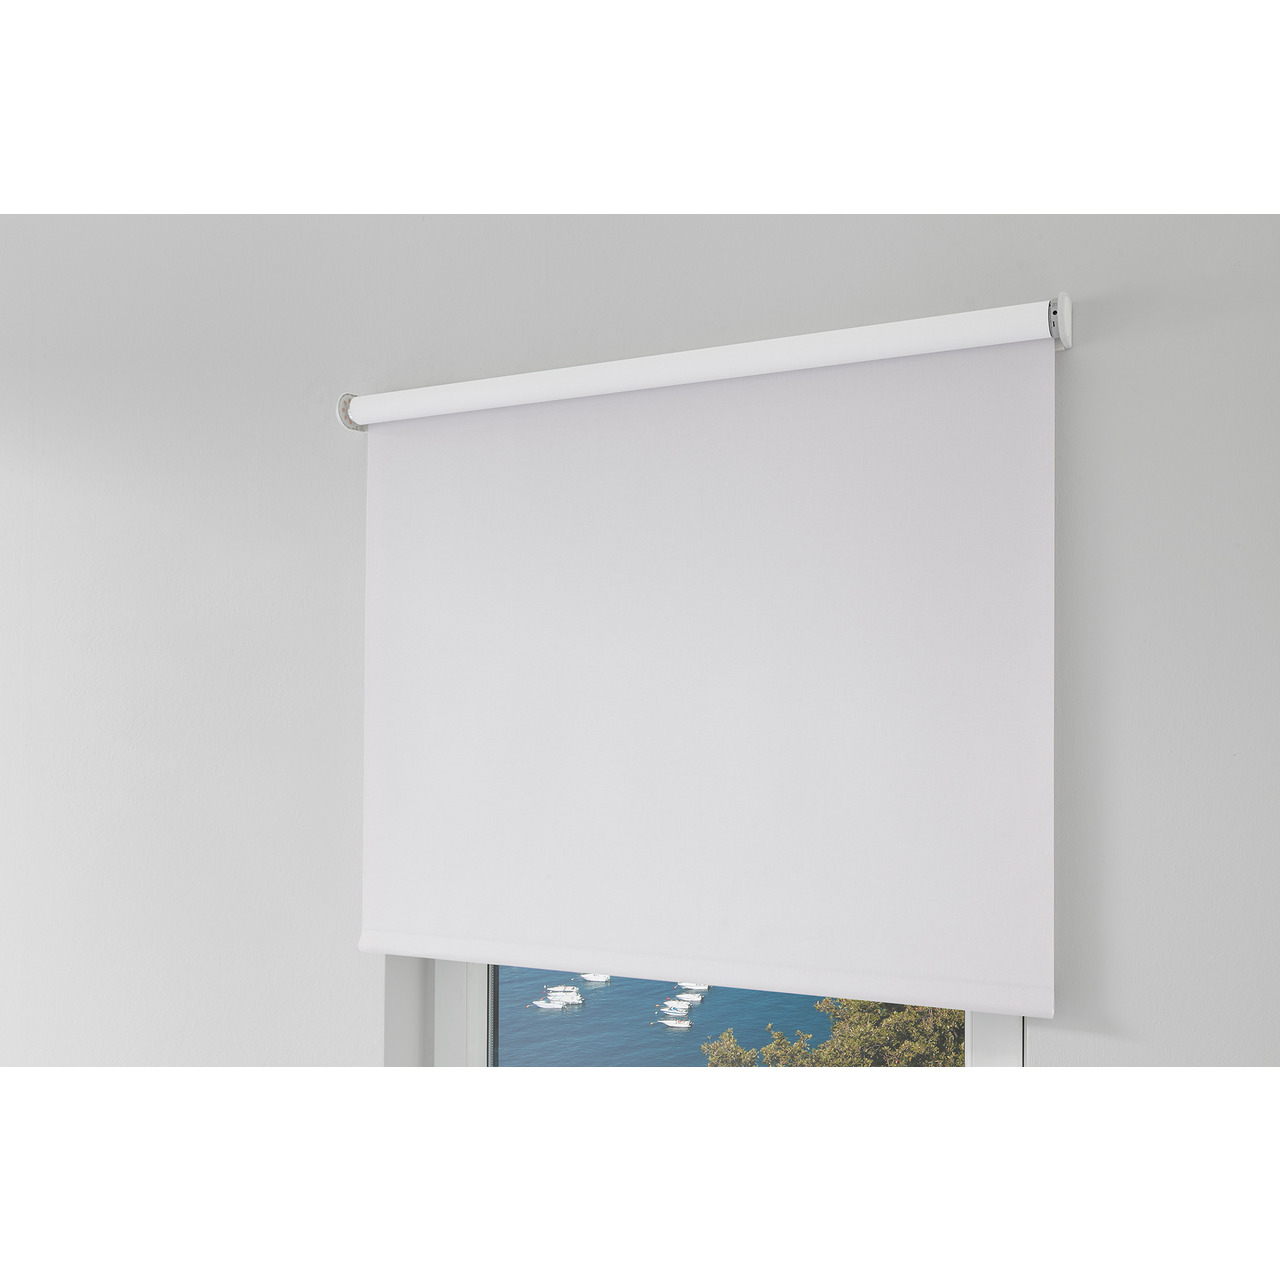 Erfal Smartcontrol Rollo by Homematic IP- 60 x 160 cm (B x H)- blickdicht abdunkelnd weiss